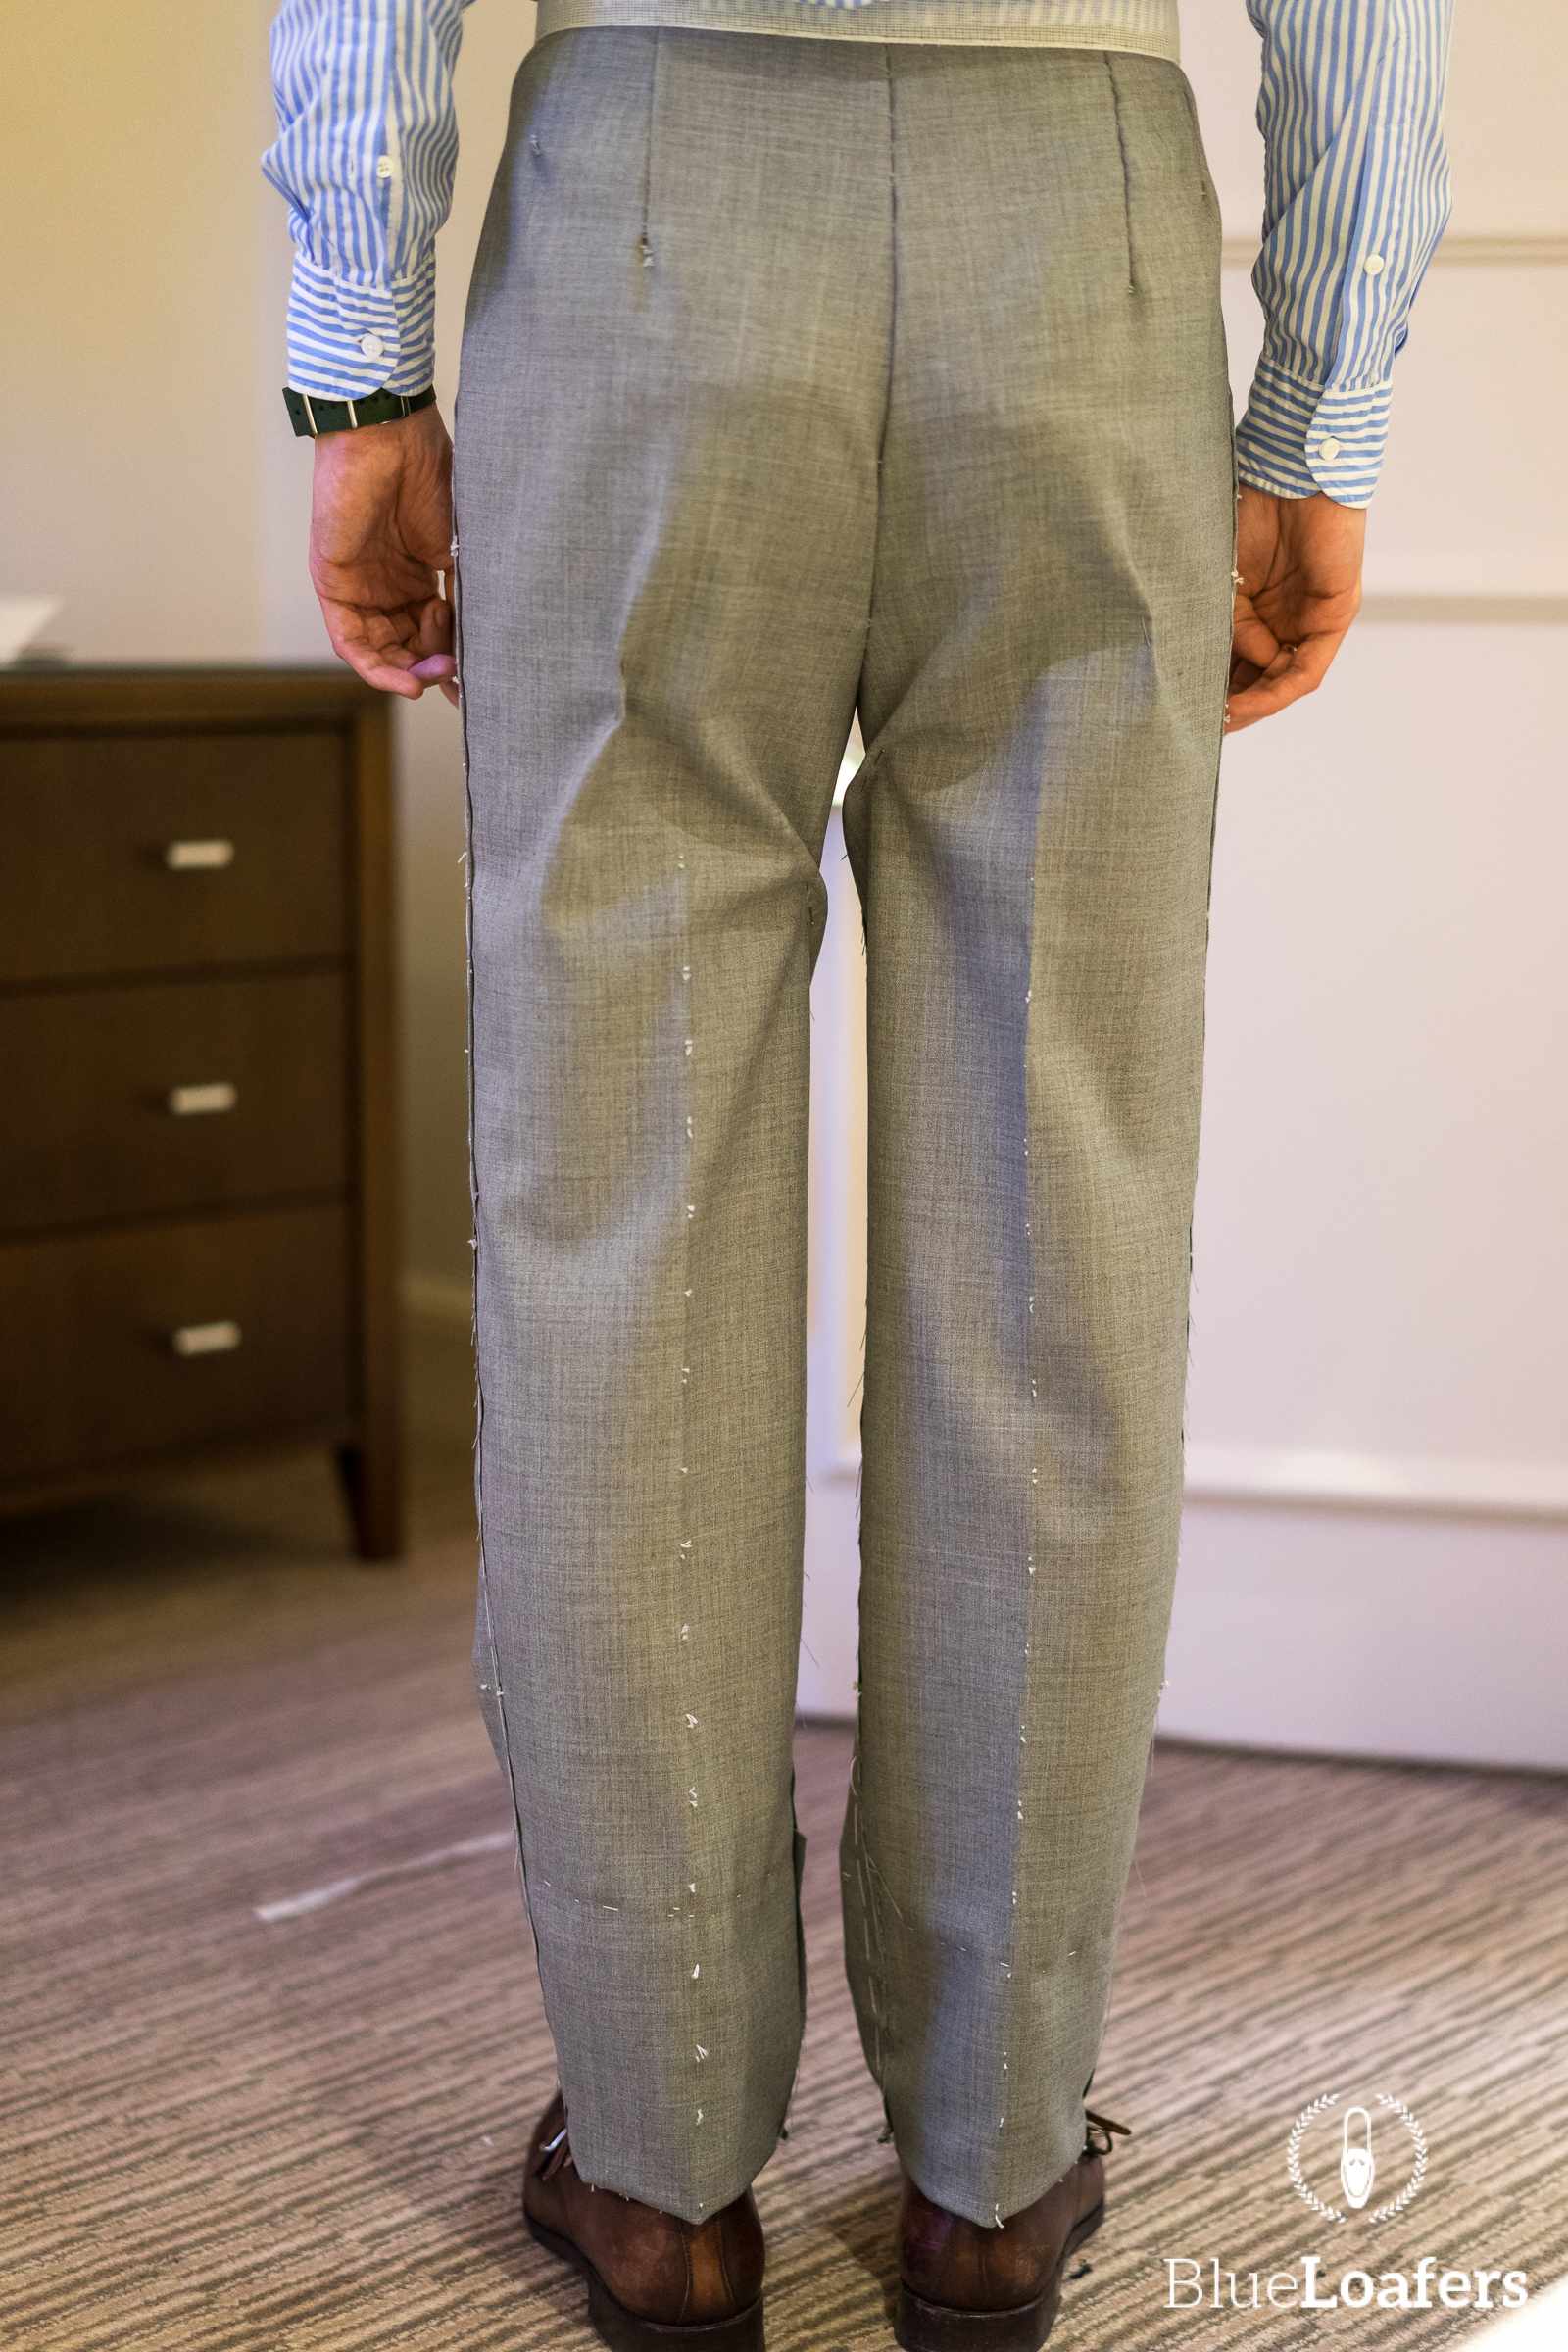 b u0026tailor bespoke suit - first fitting